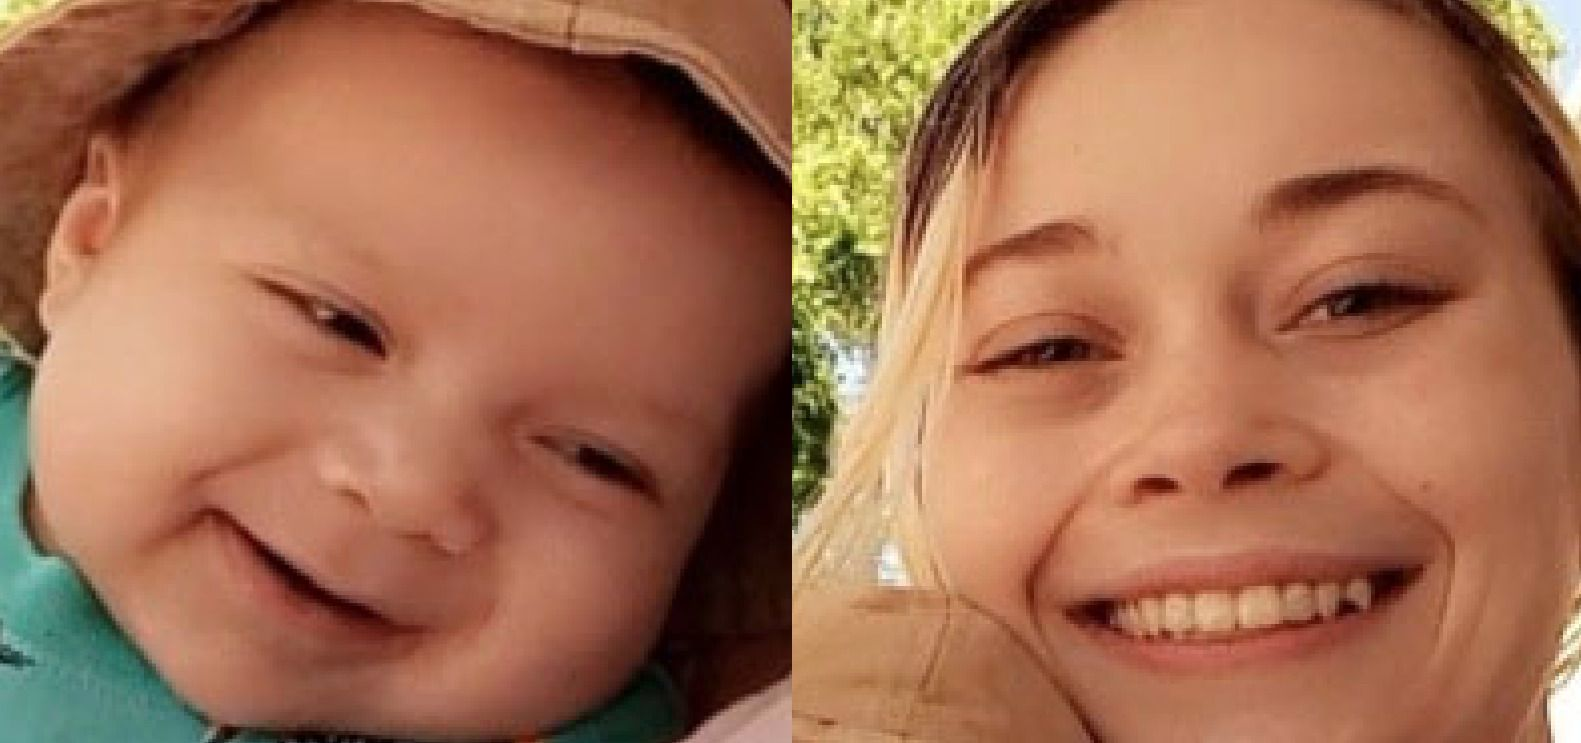 Seven-month-old Miguel Ramirez was found safe earlier this week after authorities issued an Amber Alert for his abduction. Faith Joann Reid, 20, the boy's mother has been arrested and accused of abducting the baby, according to the Parker County sheriff's office. Marcus Allhoff Nast, 25, remains at large.